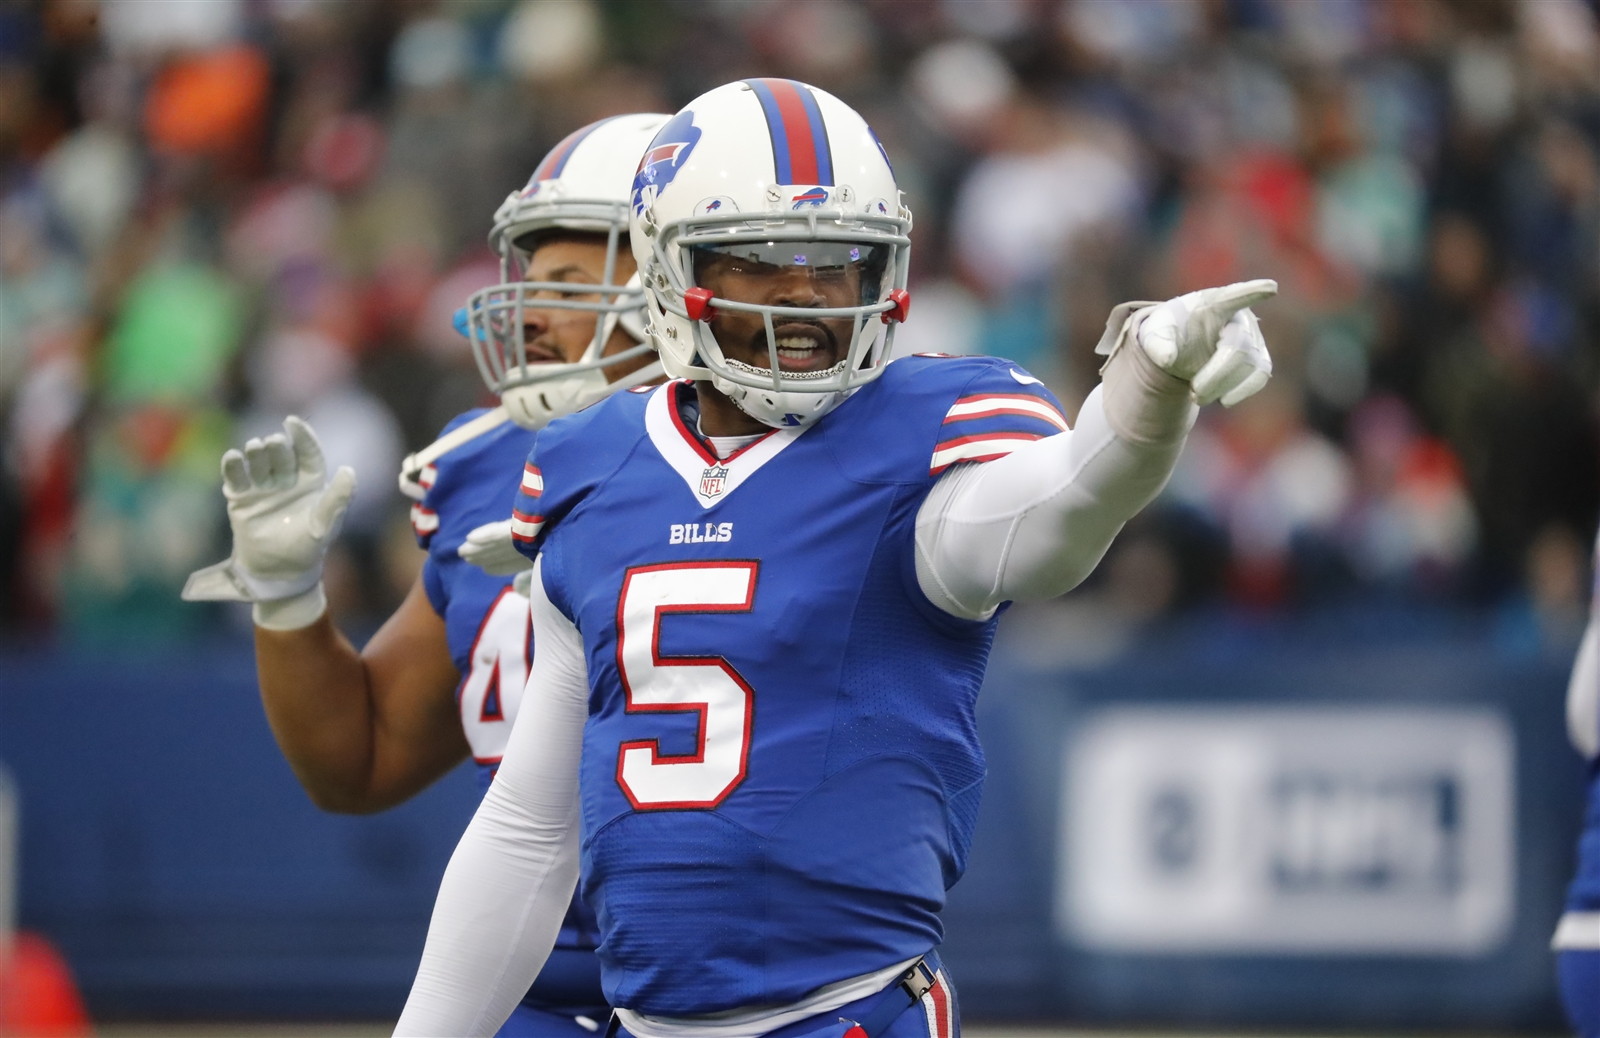 BILLS PASSING GAME (A): Tyrod Tayloru2019s finest moment as a member of the Bills ultimately came up short. He threw for 300 yards for the first time as a member of the team, finishing 26 of 39 for 329 yards and three touchdowns. He finished 6 seconds short of what would have been an impressive fourth-quarter comeback u2013 just the third of his career. He got Charles Clay involved in the game again u2013 the tight end had eight catches for 85 yards and a pair of scores. Sammy Watkins gutted out another strong performance u2013 making seven catches for 154 yards and a score. But all of it went to waste.